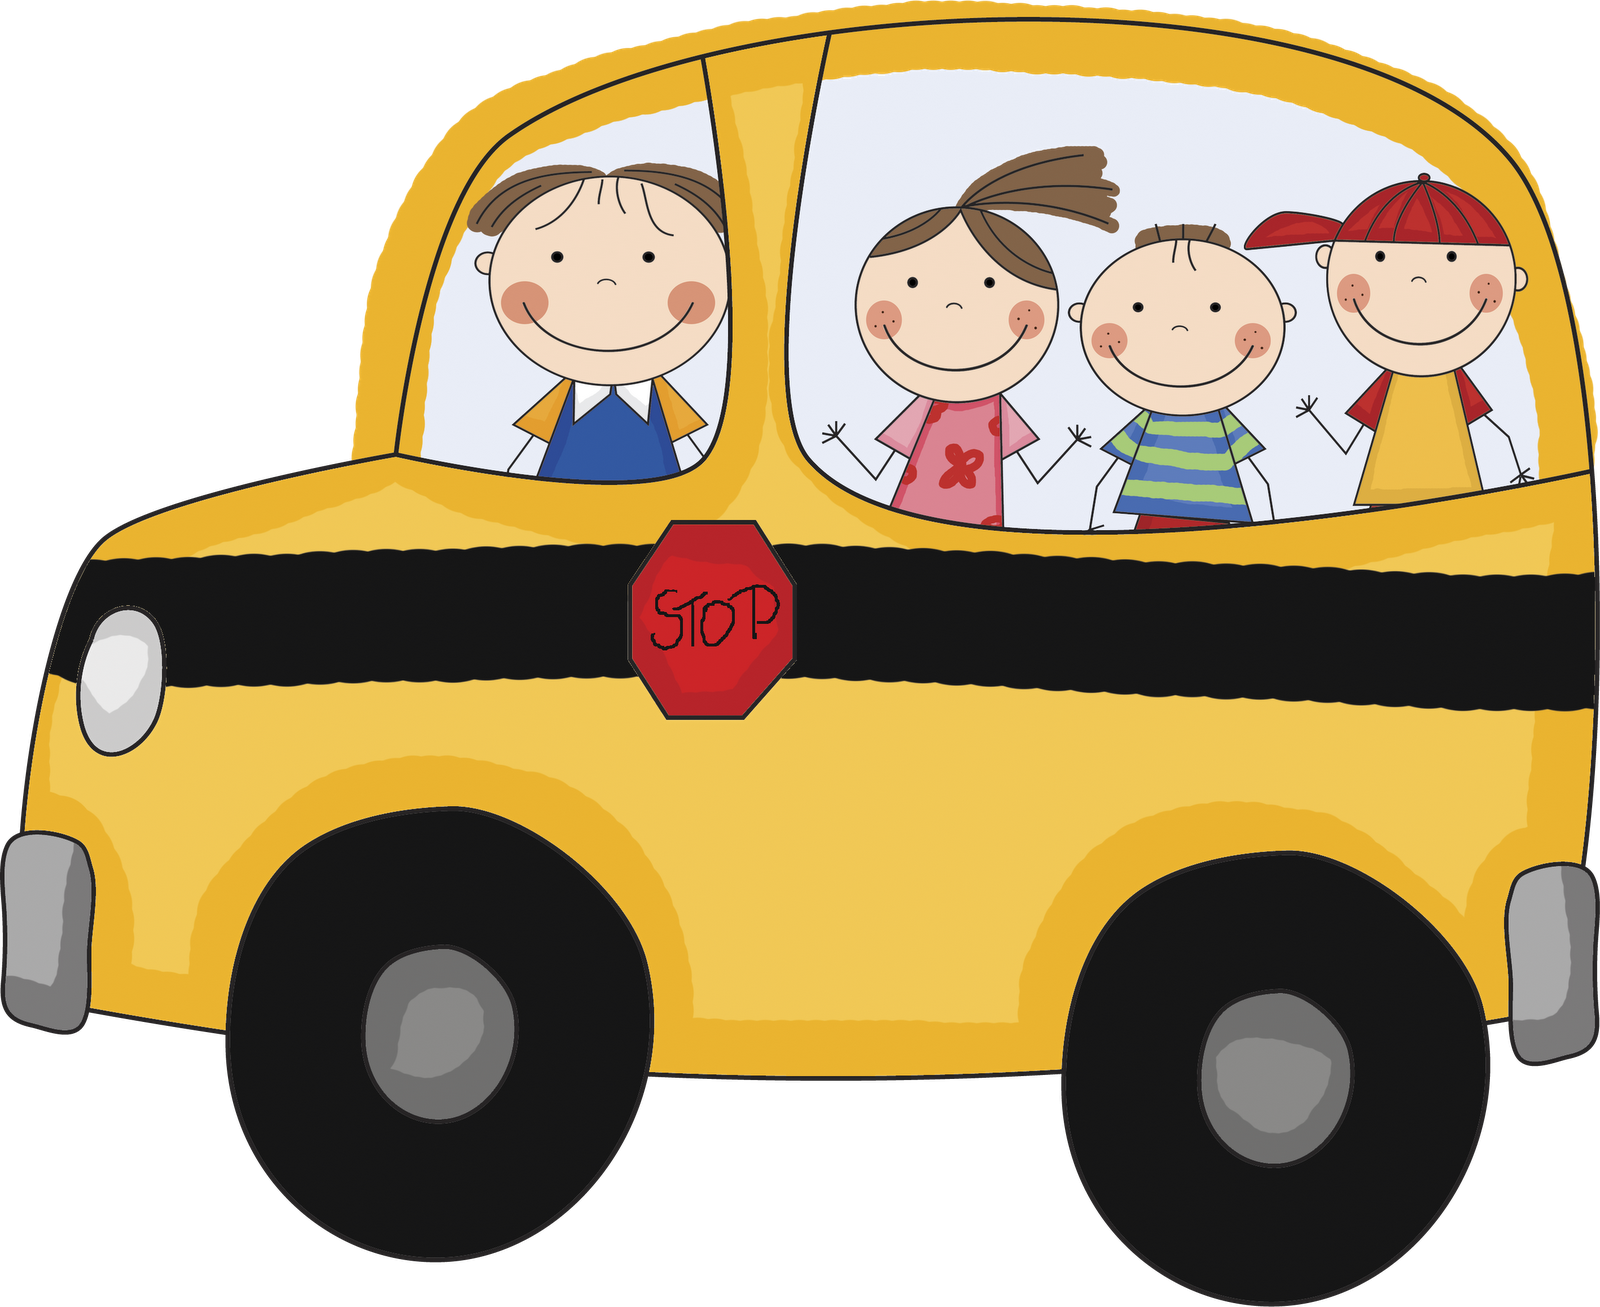 School bus clipart red lips clipart black and white library Download School Bus Images 3 School Bus Vector Clipart PNG ... clipart black and white library